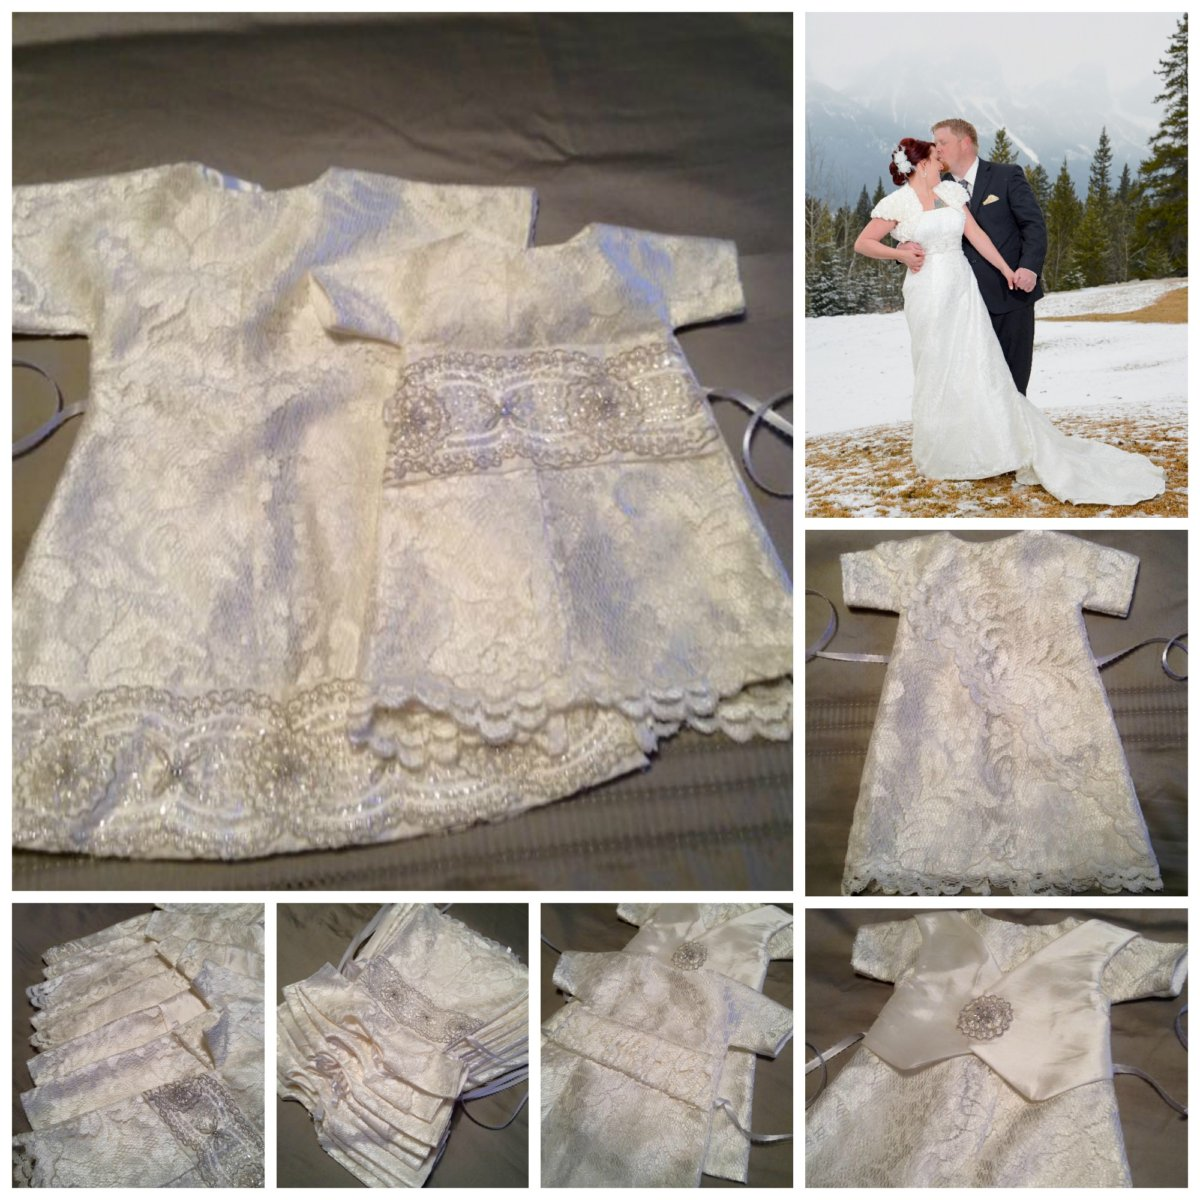 Donated by Jamie Graham